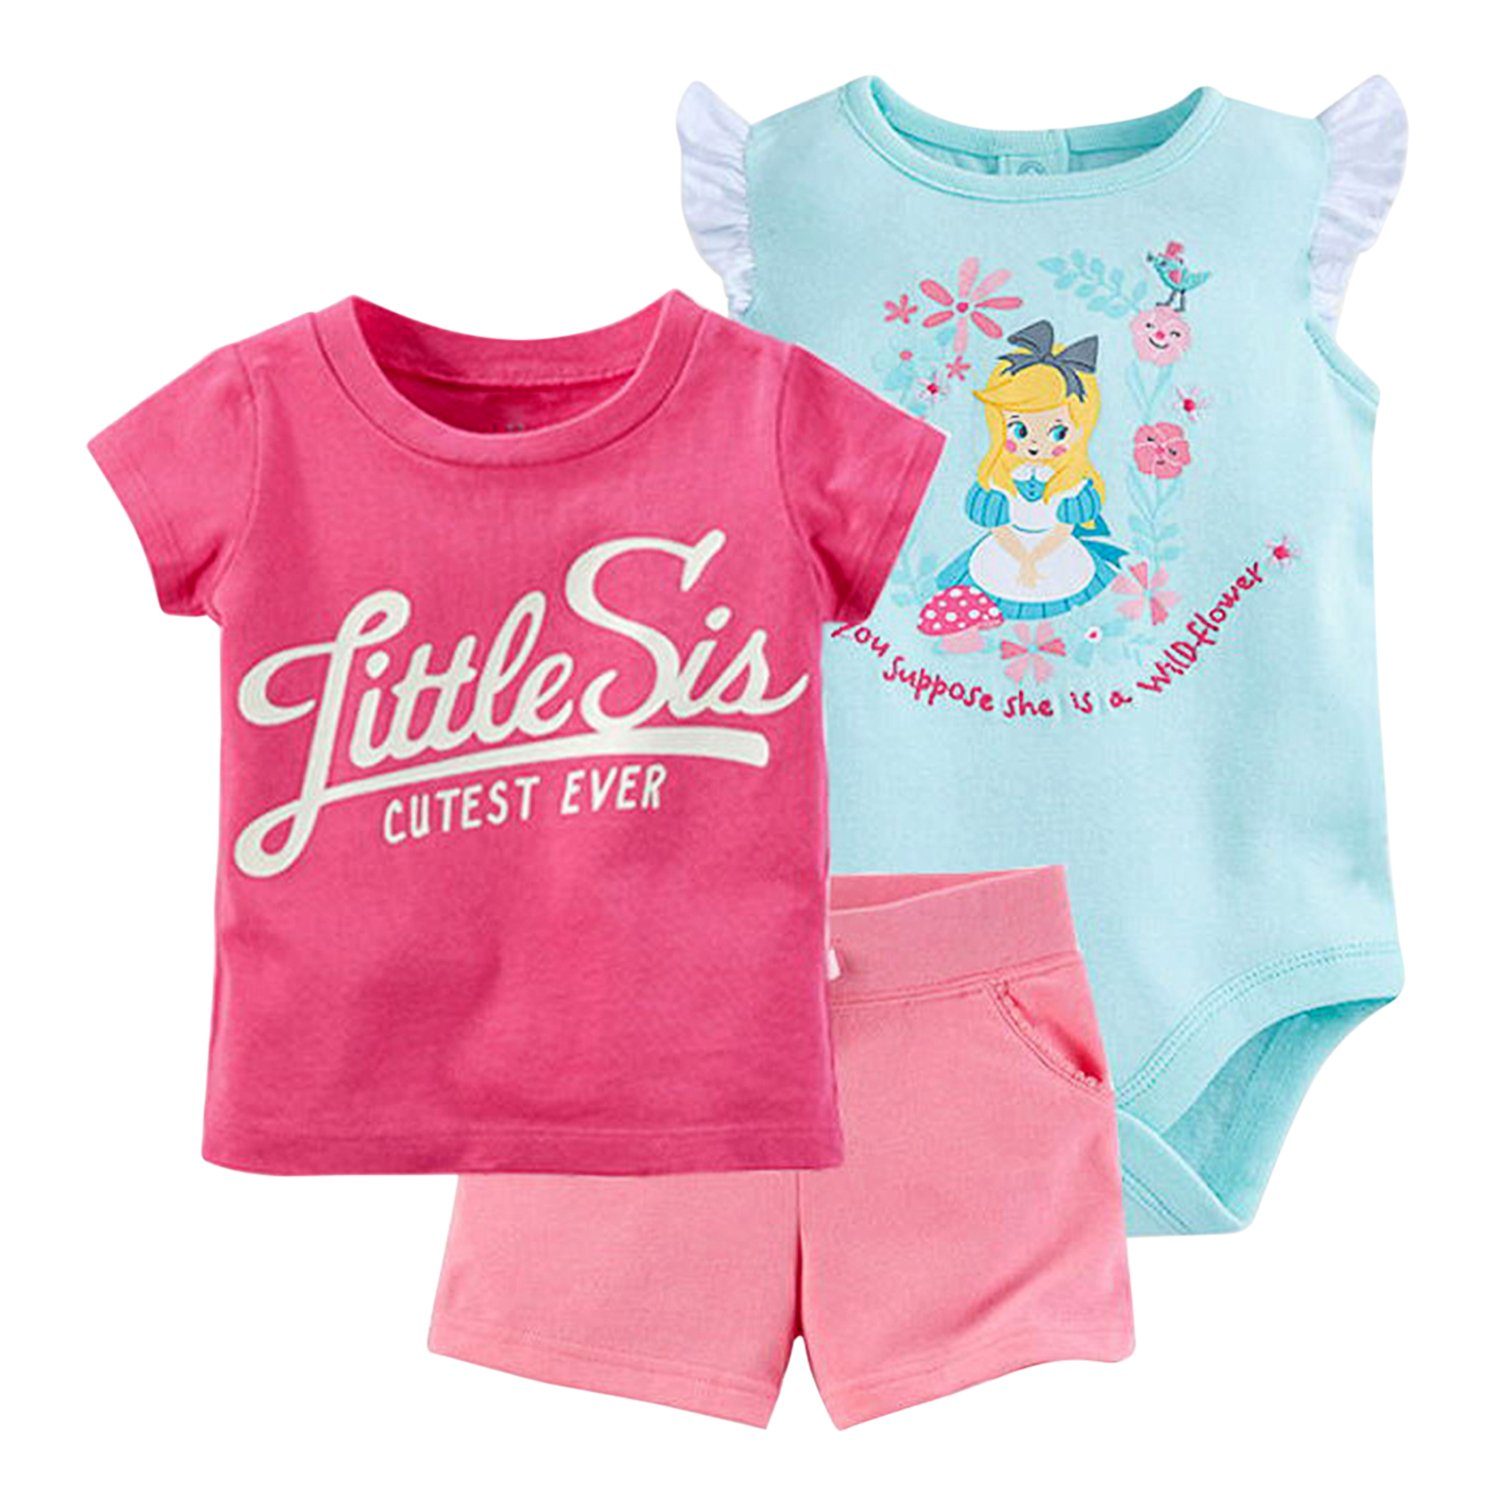 Evelin LEE 3PCS Baby Girl Shirt Romper Shorts Clothes Set Bodysuit Set Outfit